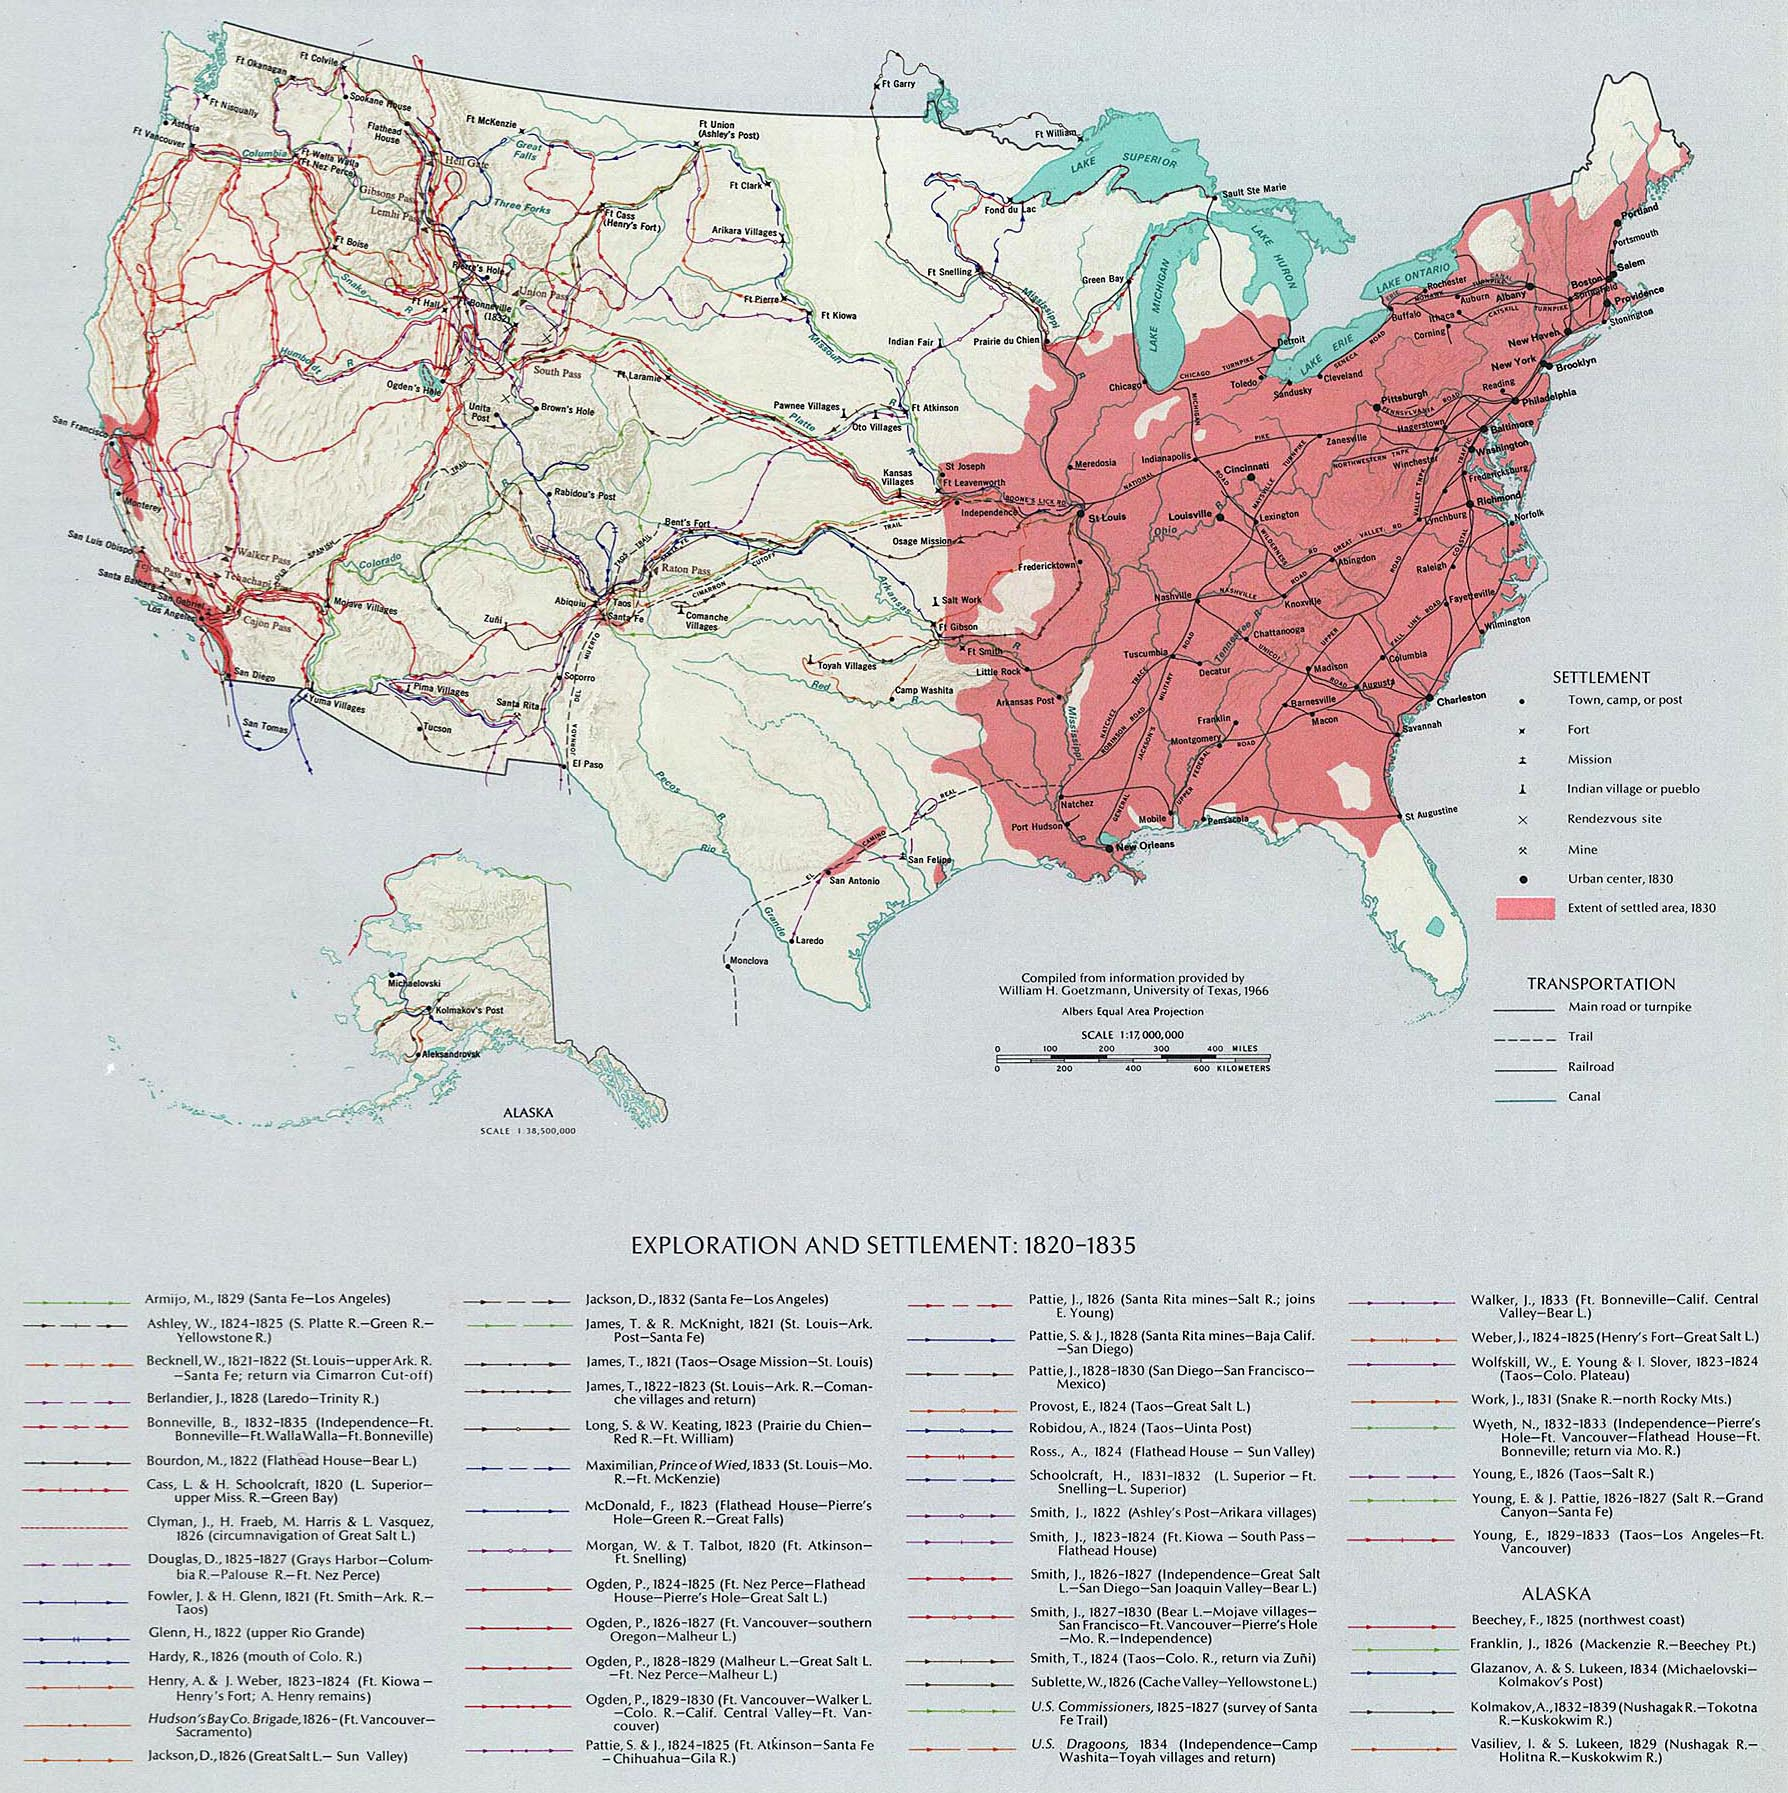 Map of the United States - Exploration and Settlement 1820-1835